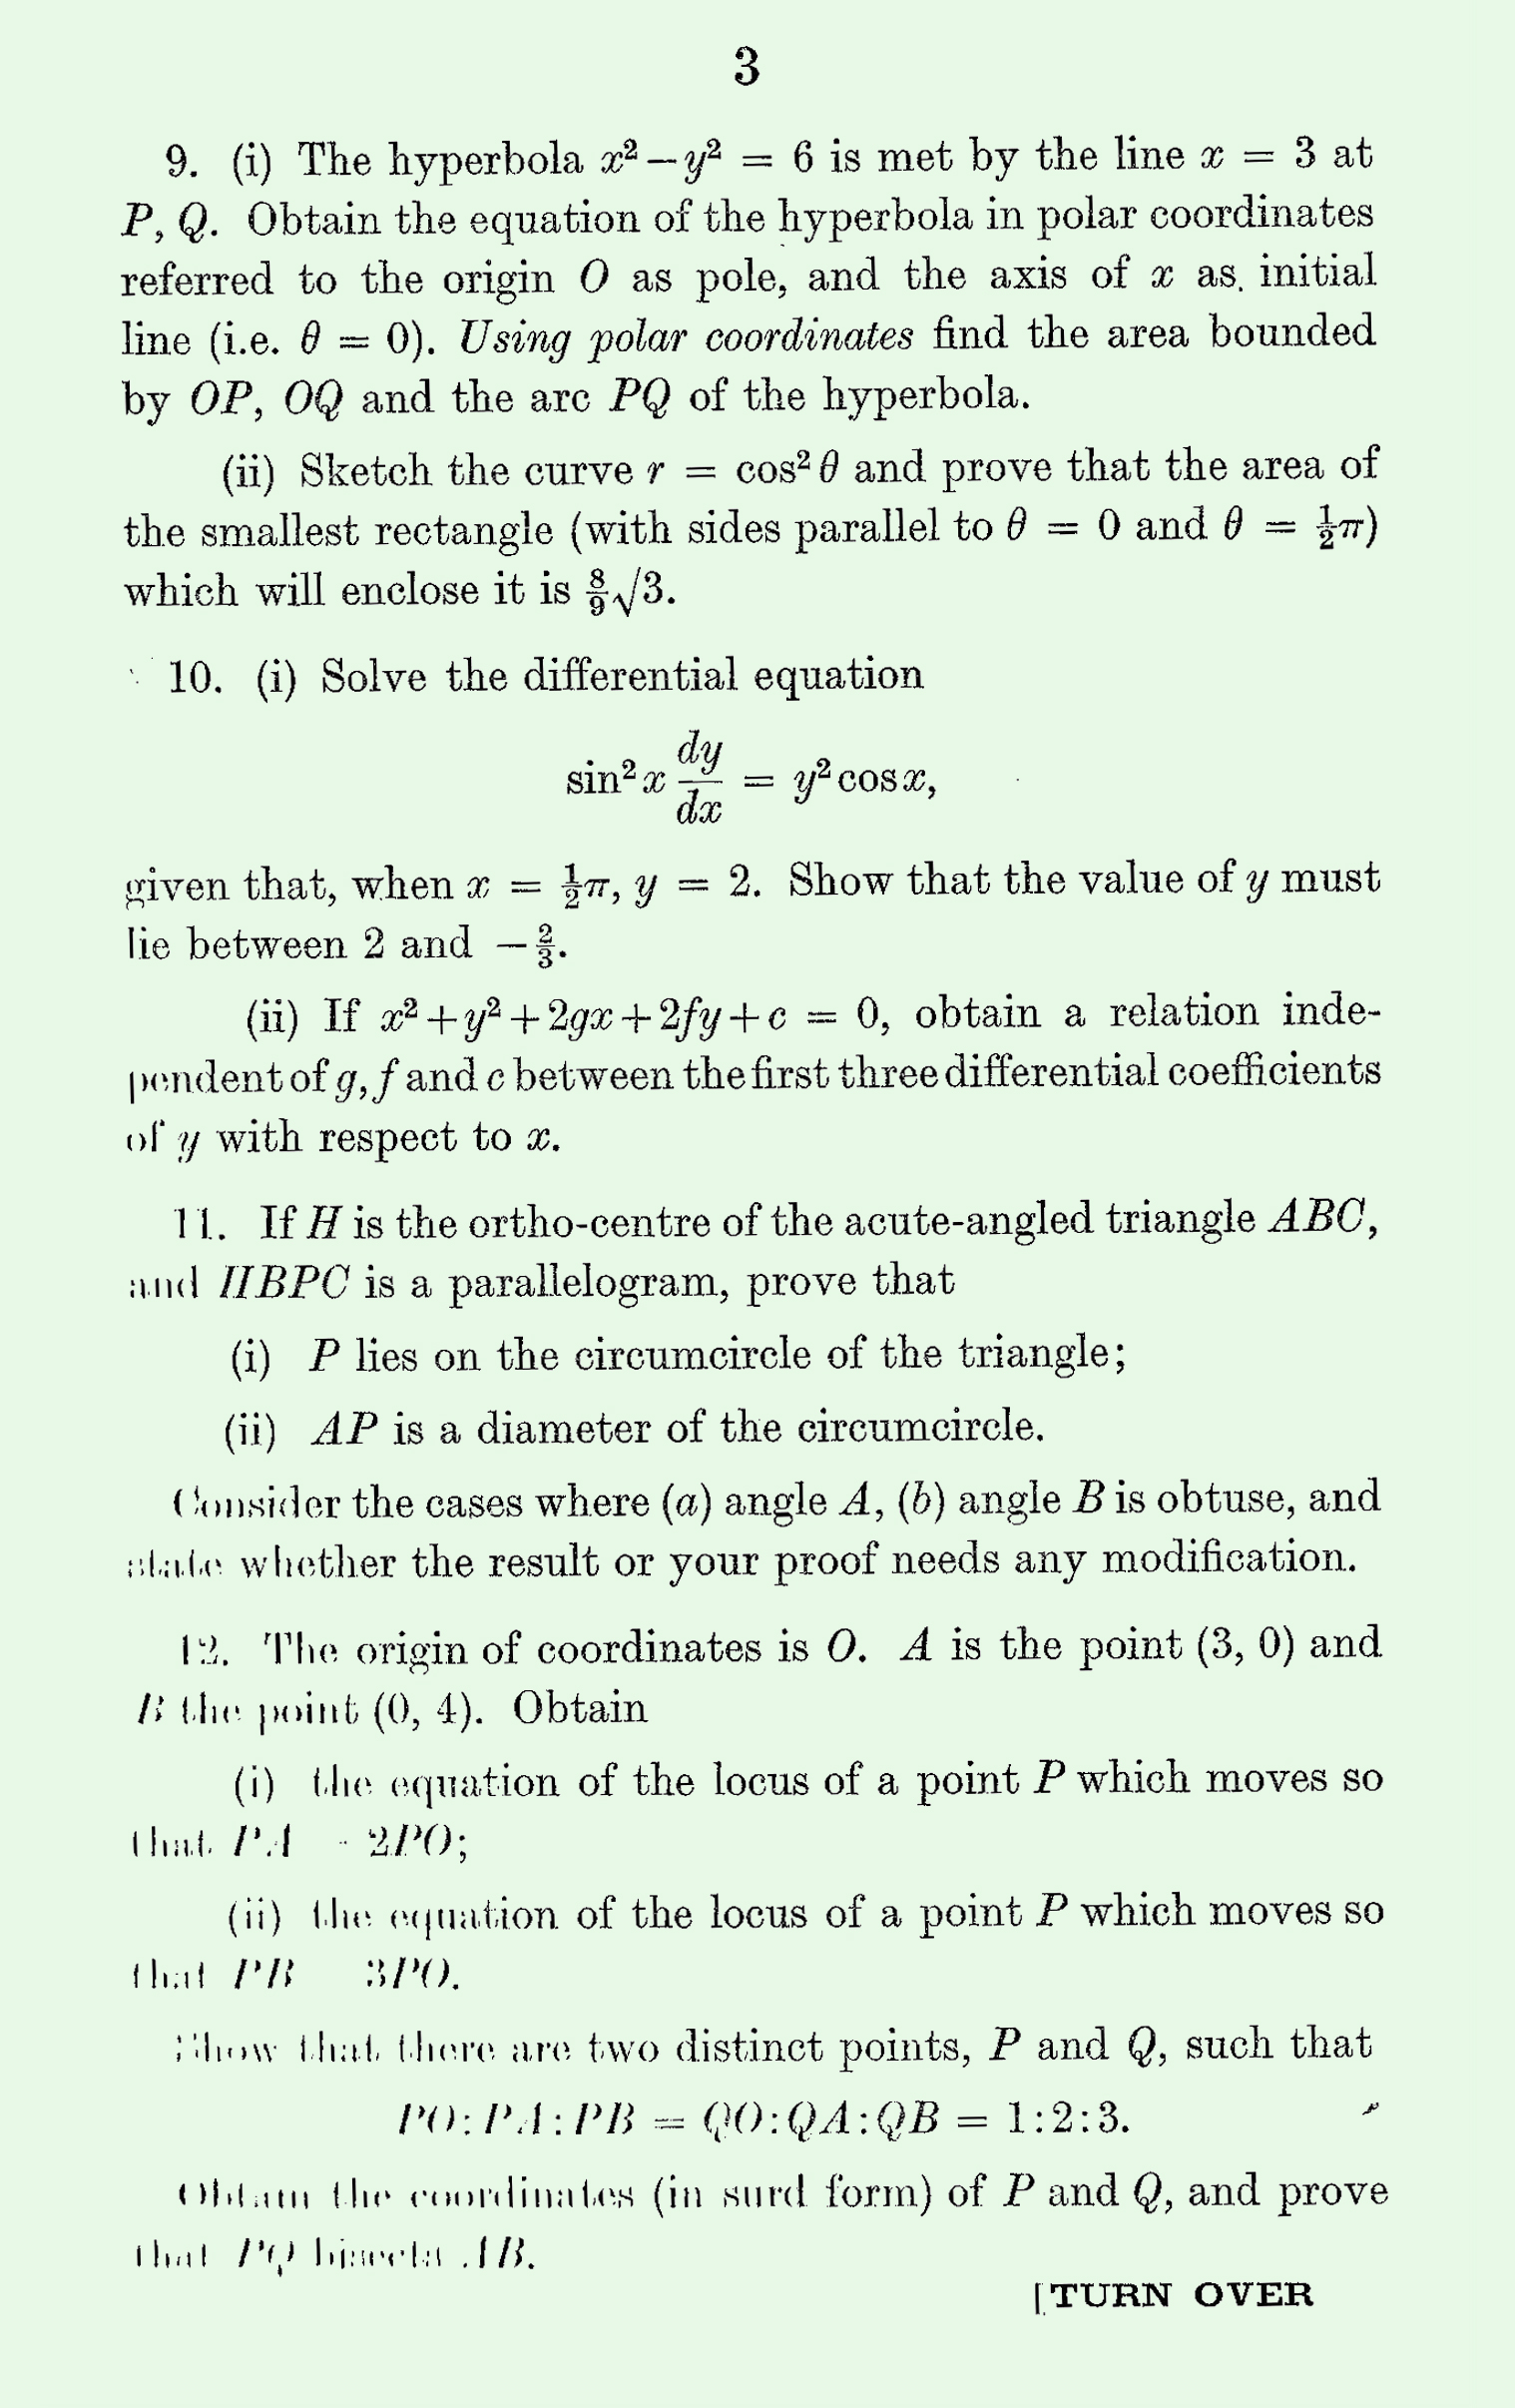 1963 Pure Mathematics A Level & S Level Paper III page 3